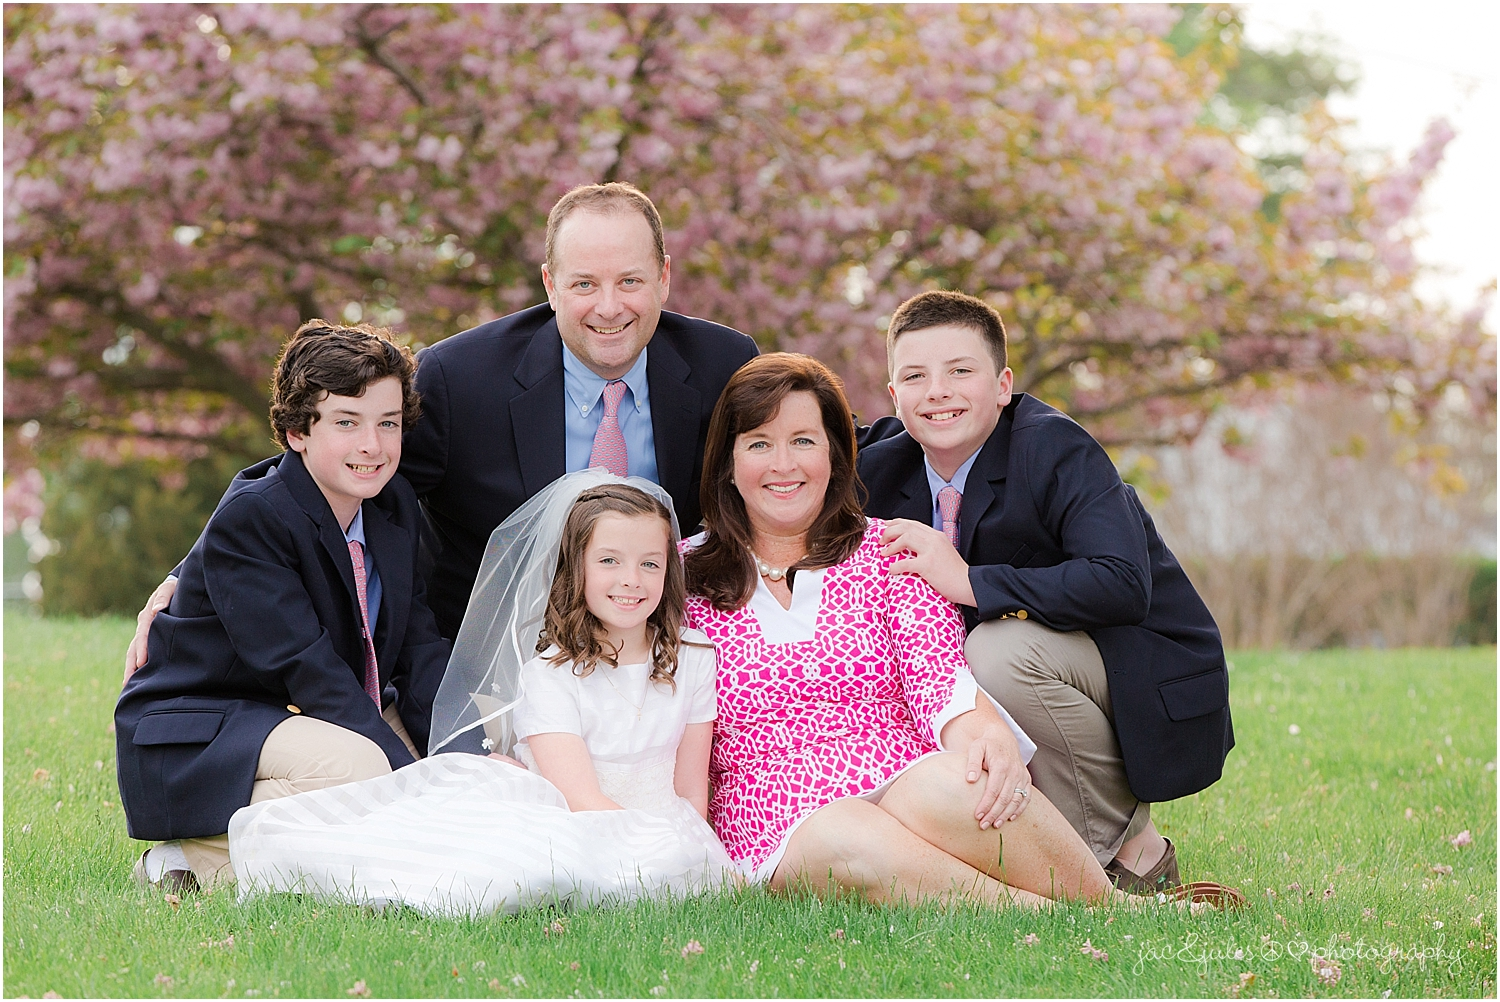 jacnjules photographs communion at st. catherine's church in spring lake nj